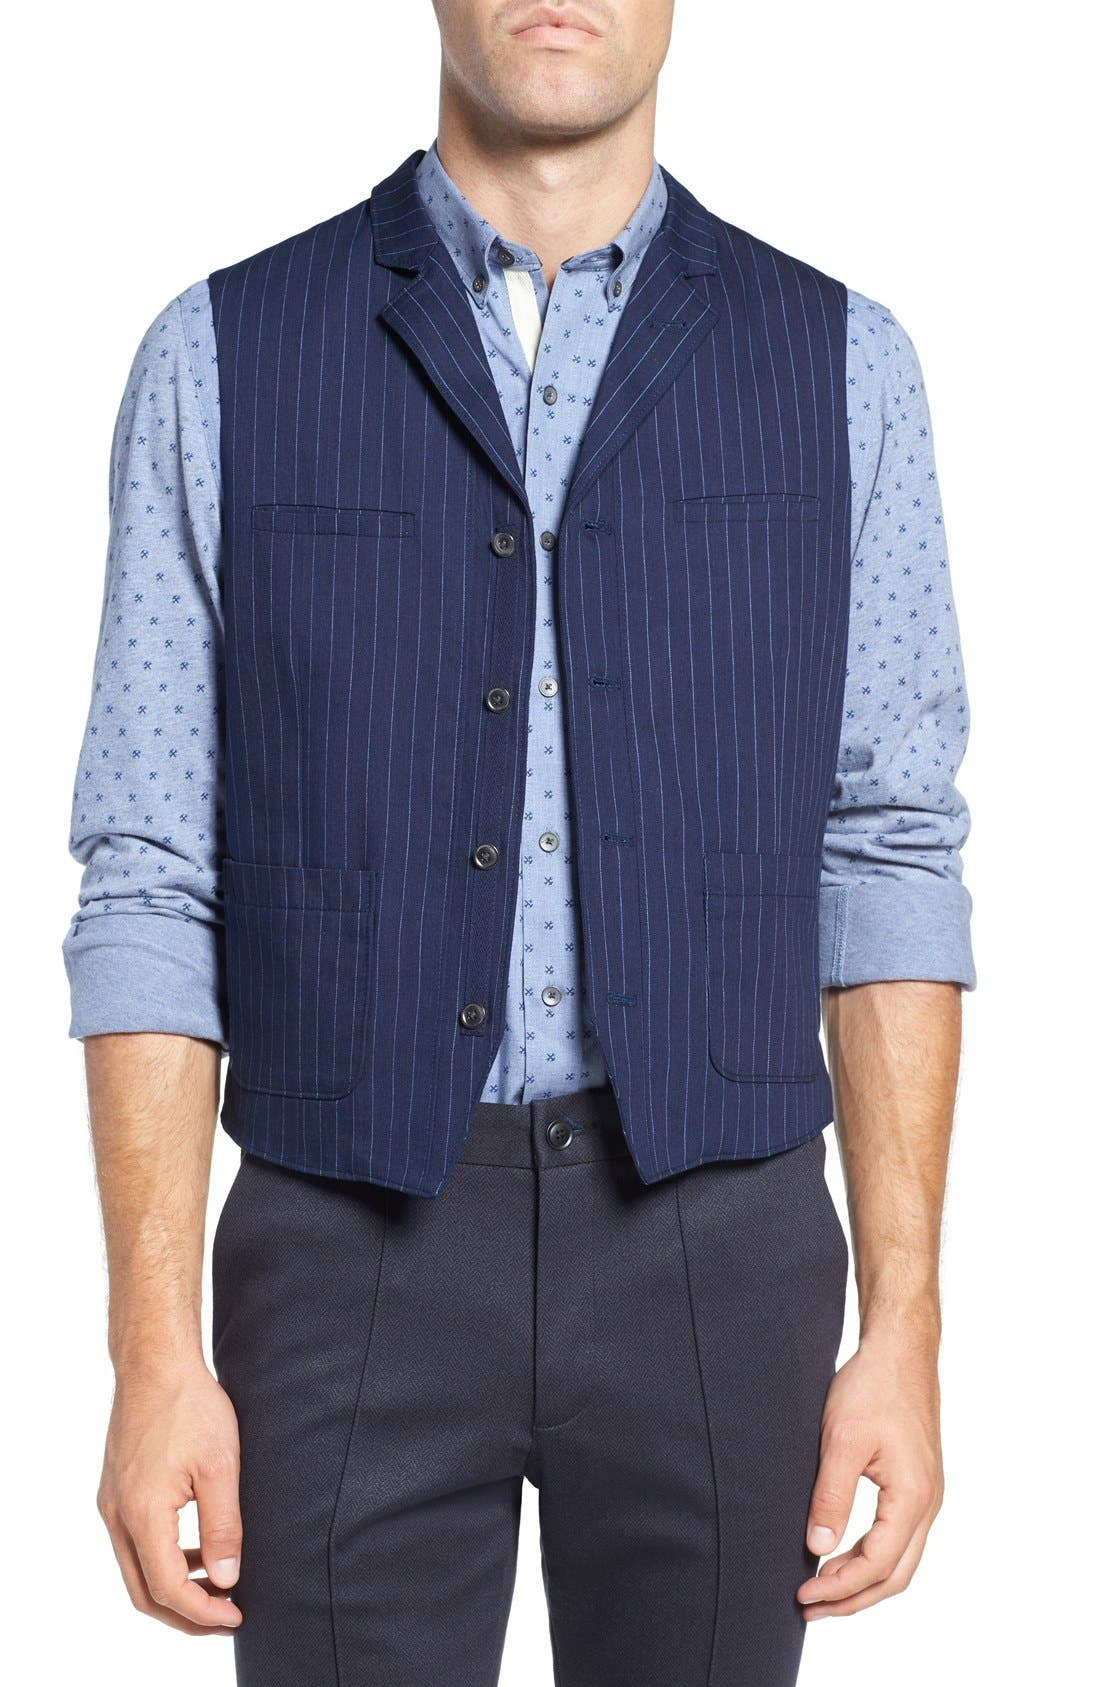 W.R.K Windsor Pinstripe Cotton Twill Vest